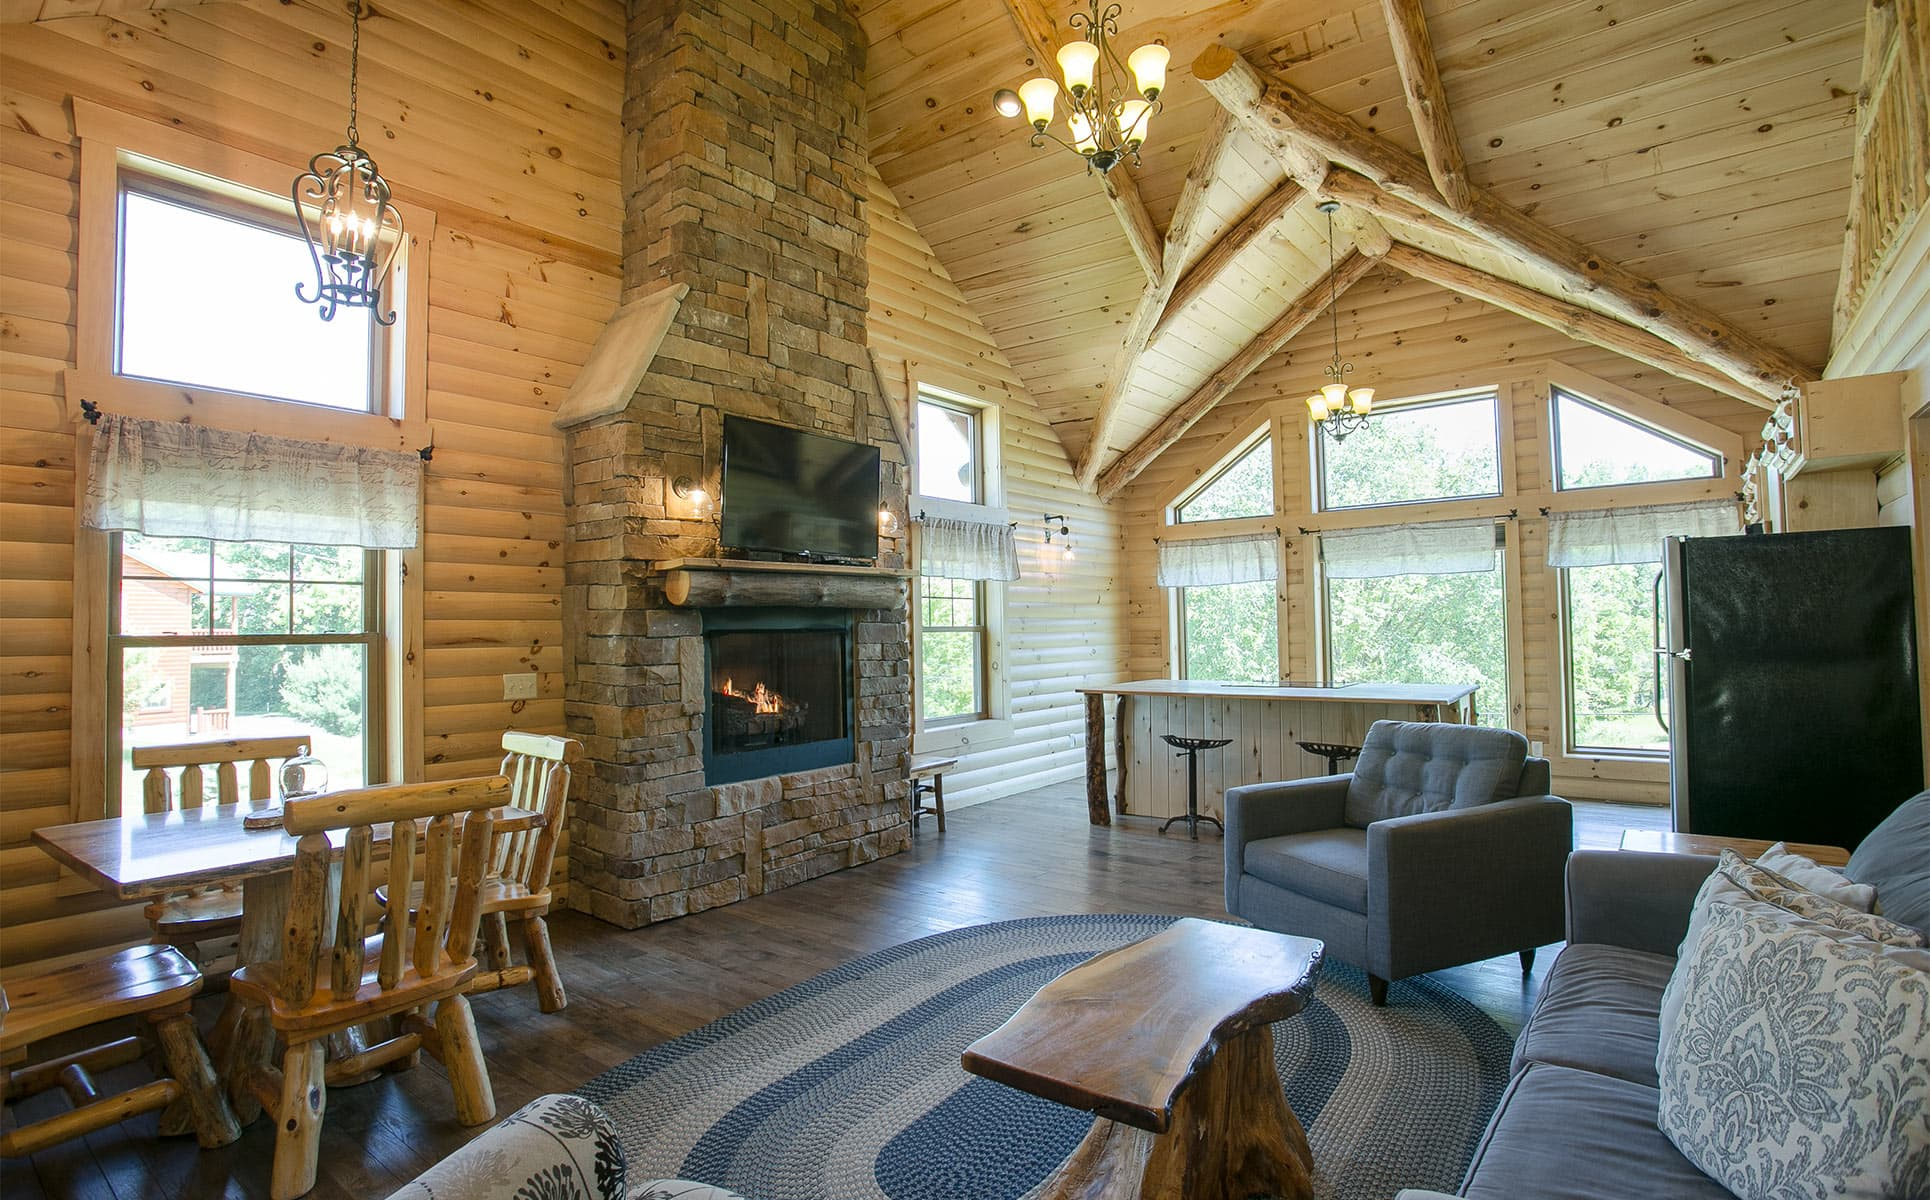 Living Room area with stone fireplace